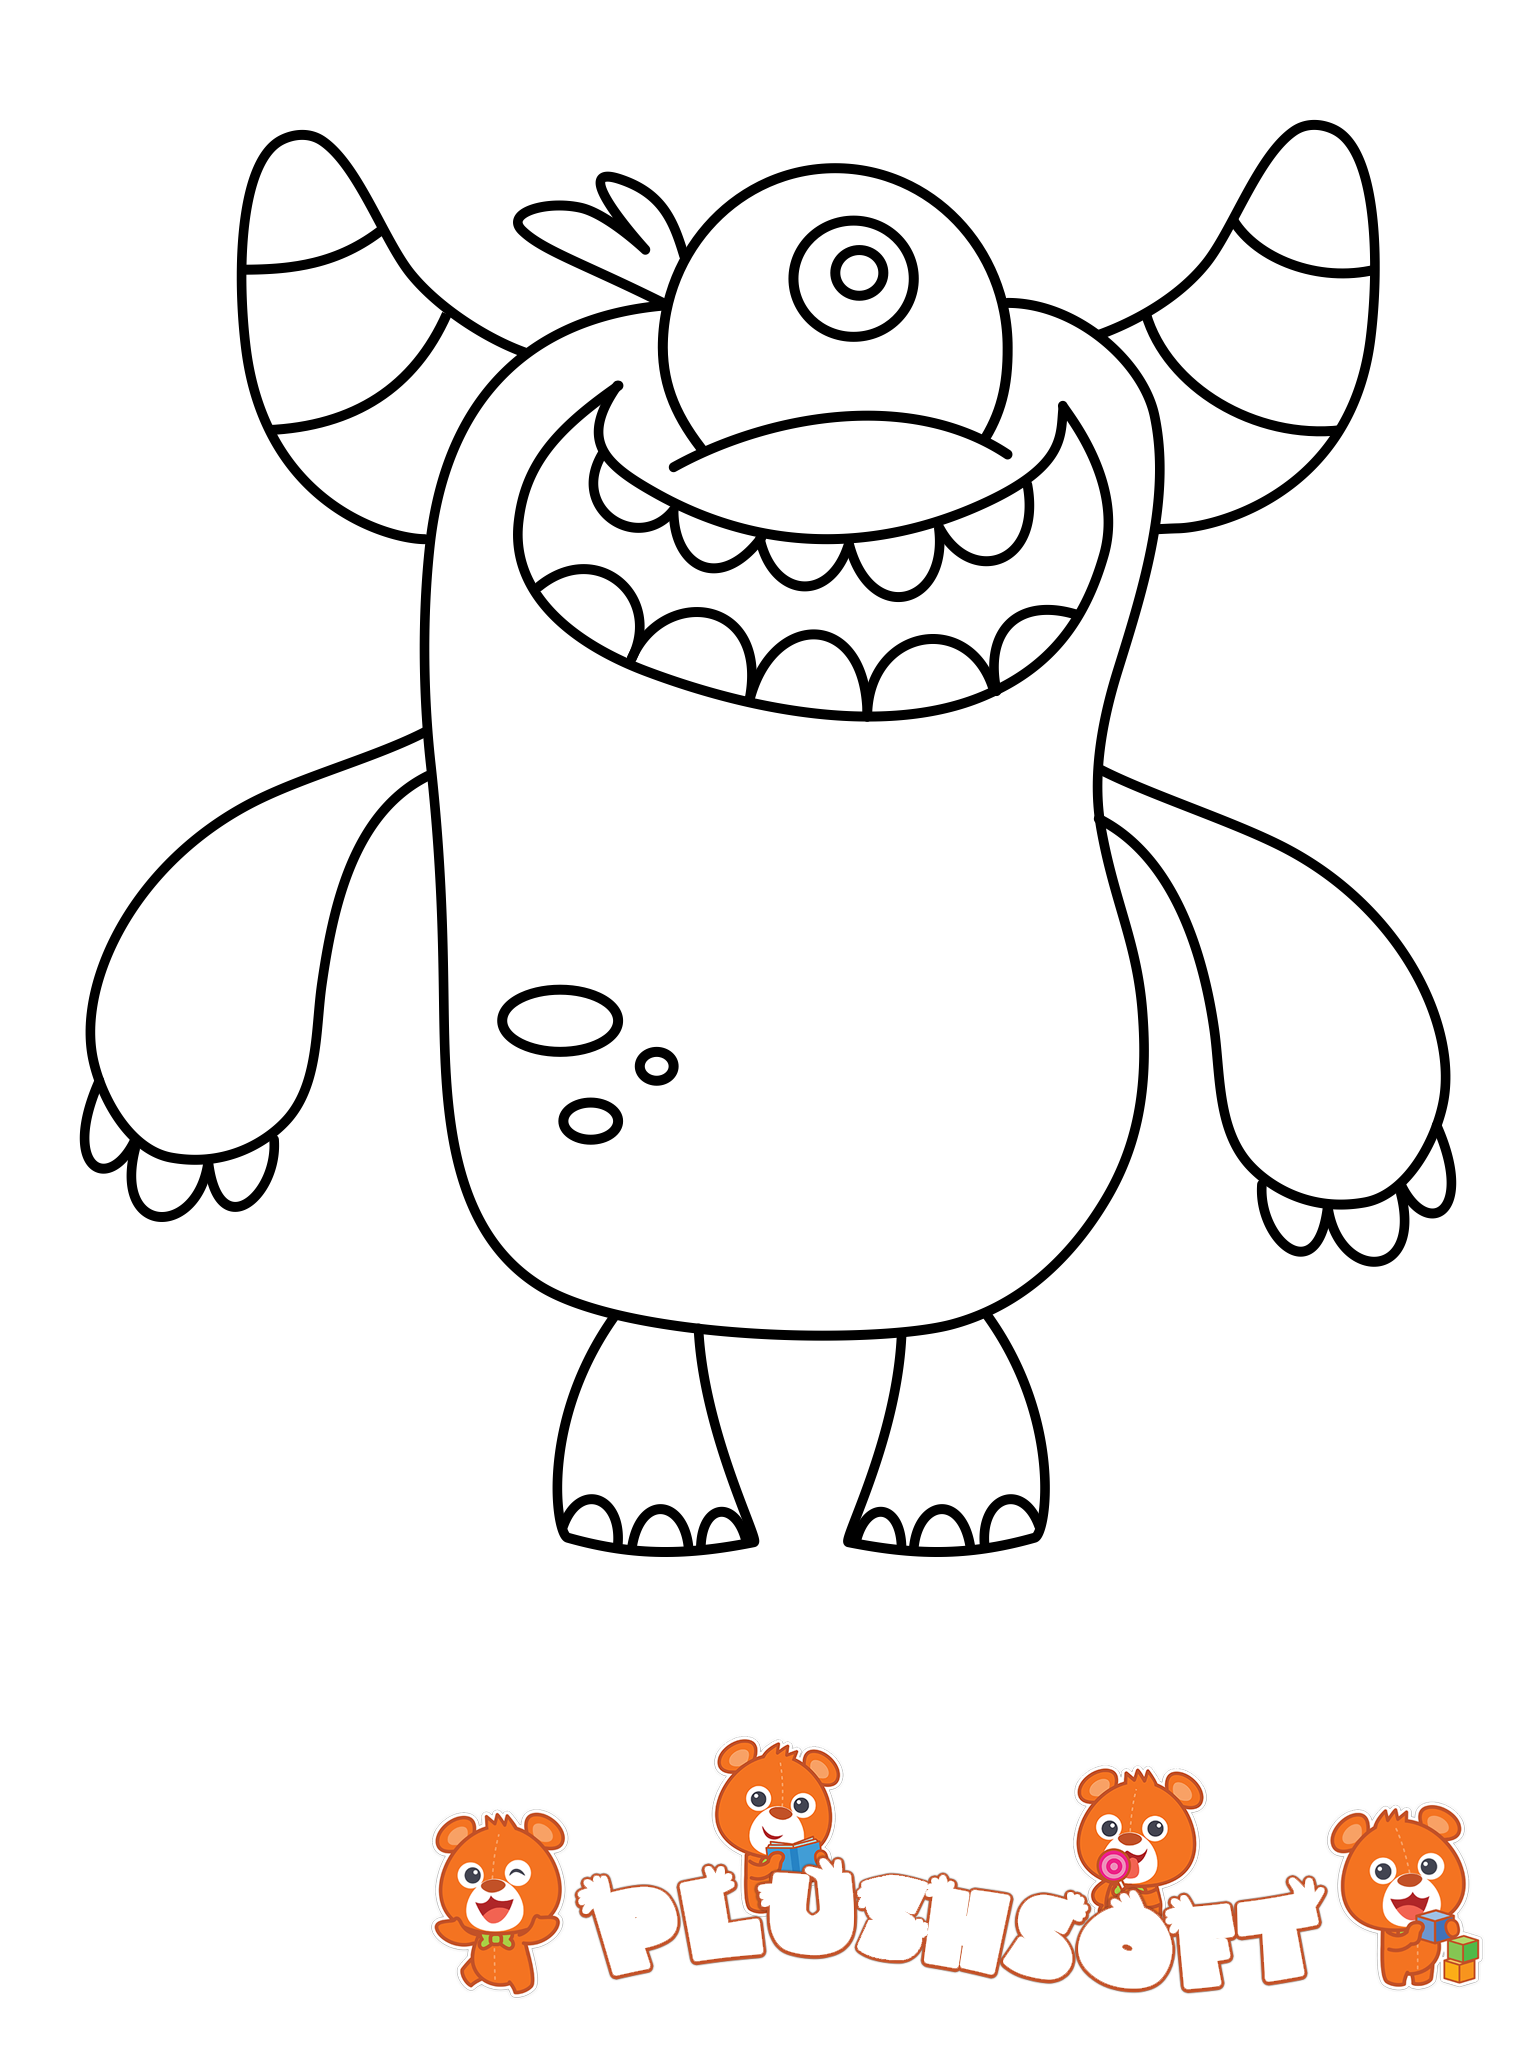 Free Printable Coloring Page A Cute Monster For Your Toddler To Color Subscribe For A New Coloring Pa Monster Coloring Pages Monster Quilt Doodle Characters